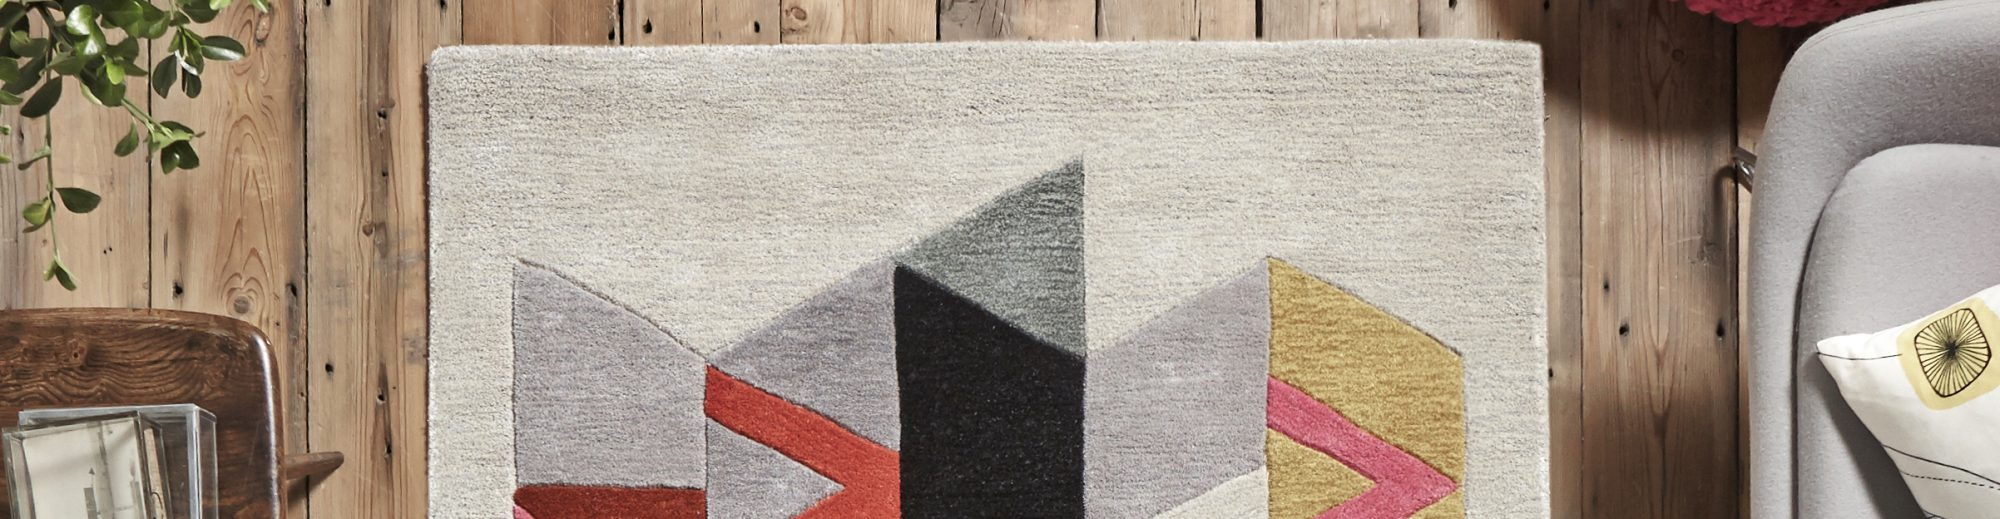 Why Do Rugs Creep And Ruck On Carpet Or Wood Flooring